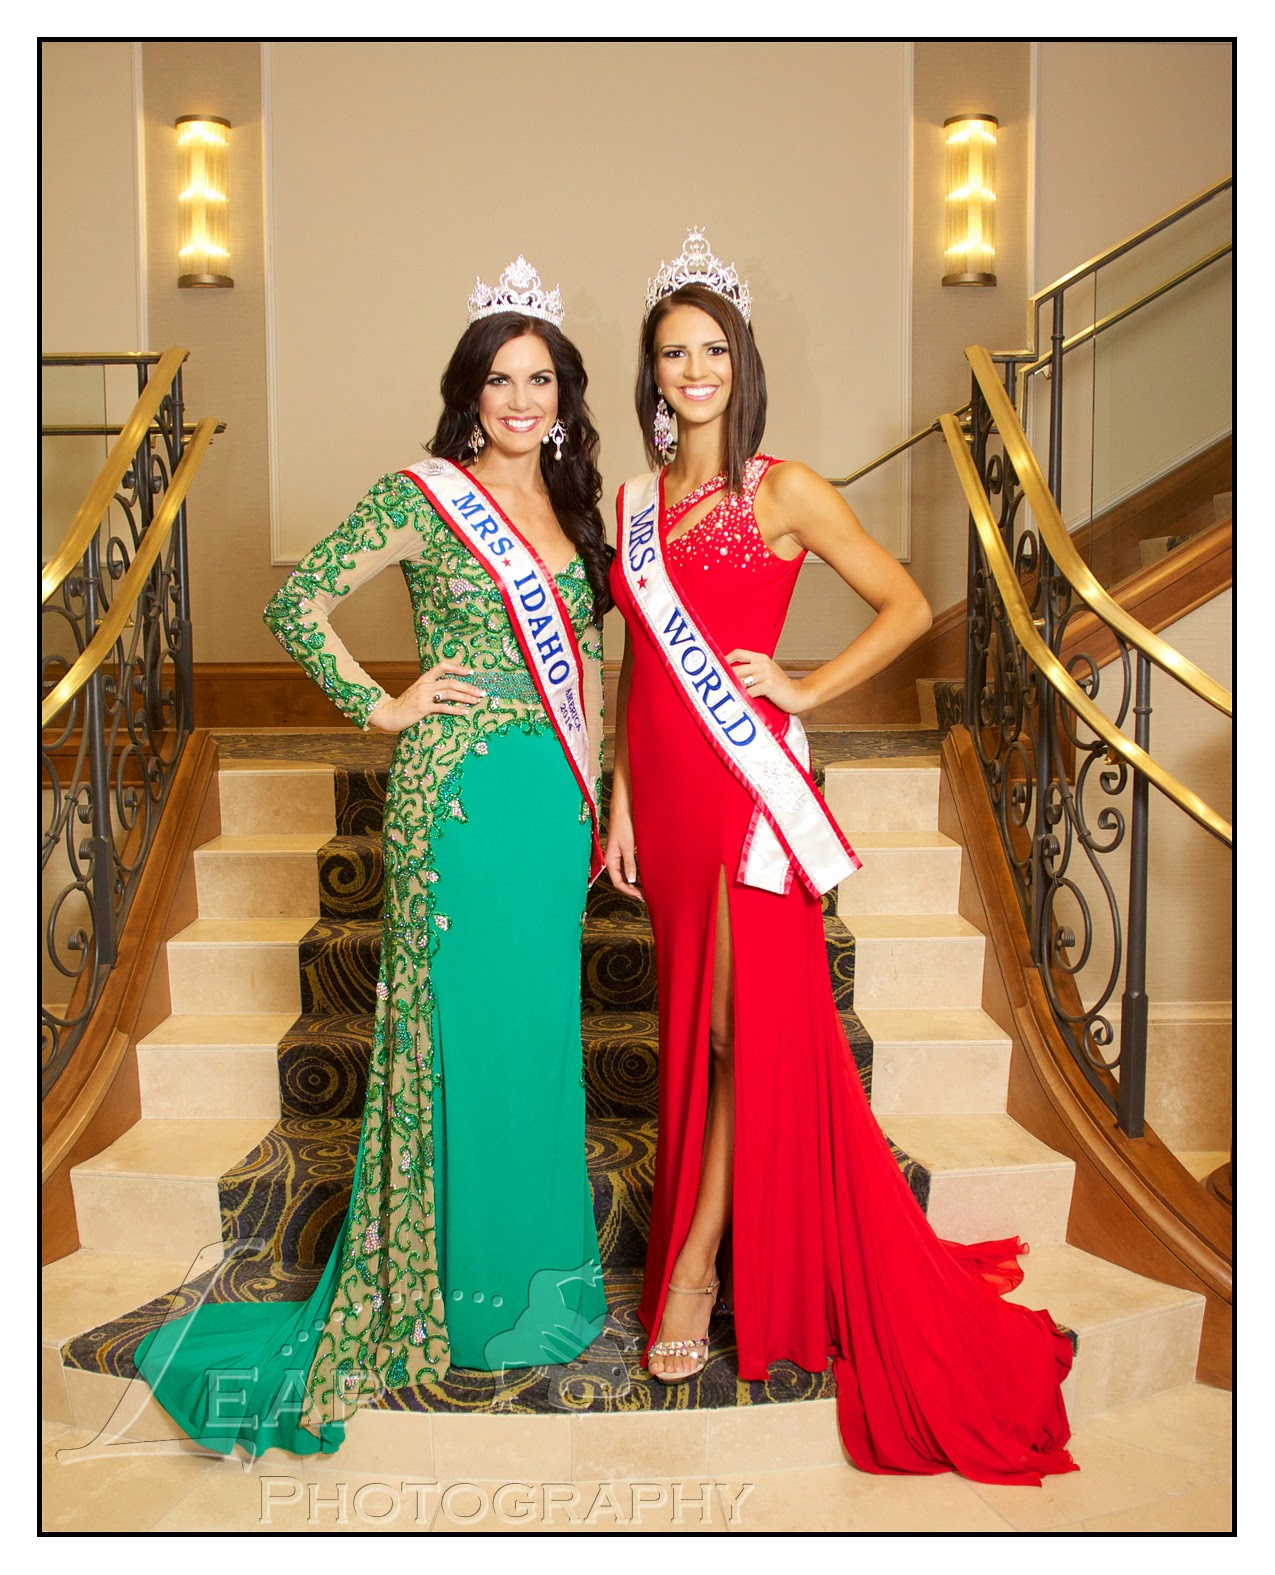 Mrs. Idaho 2014 & Mrs. World 2014 on staircase